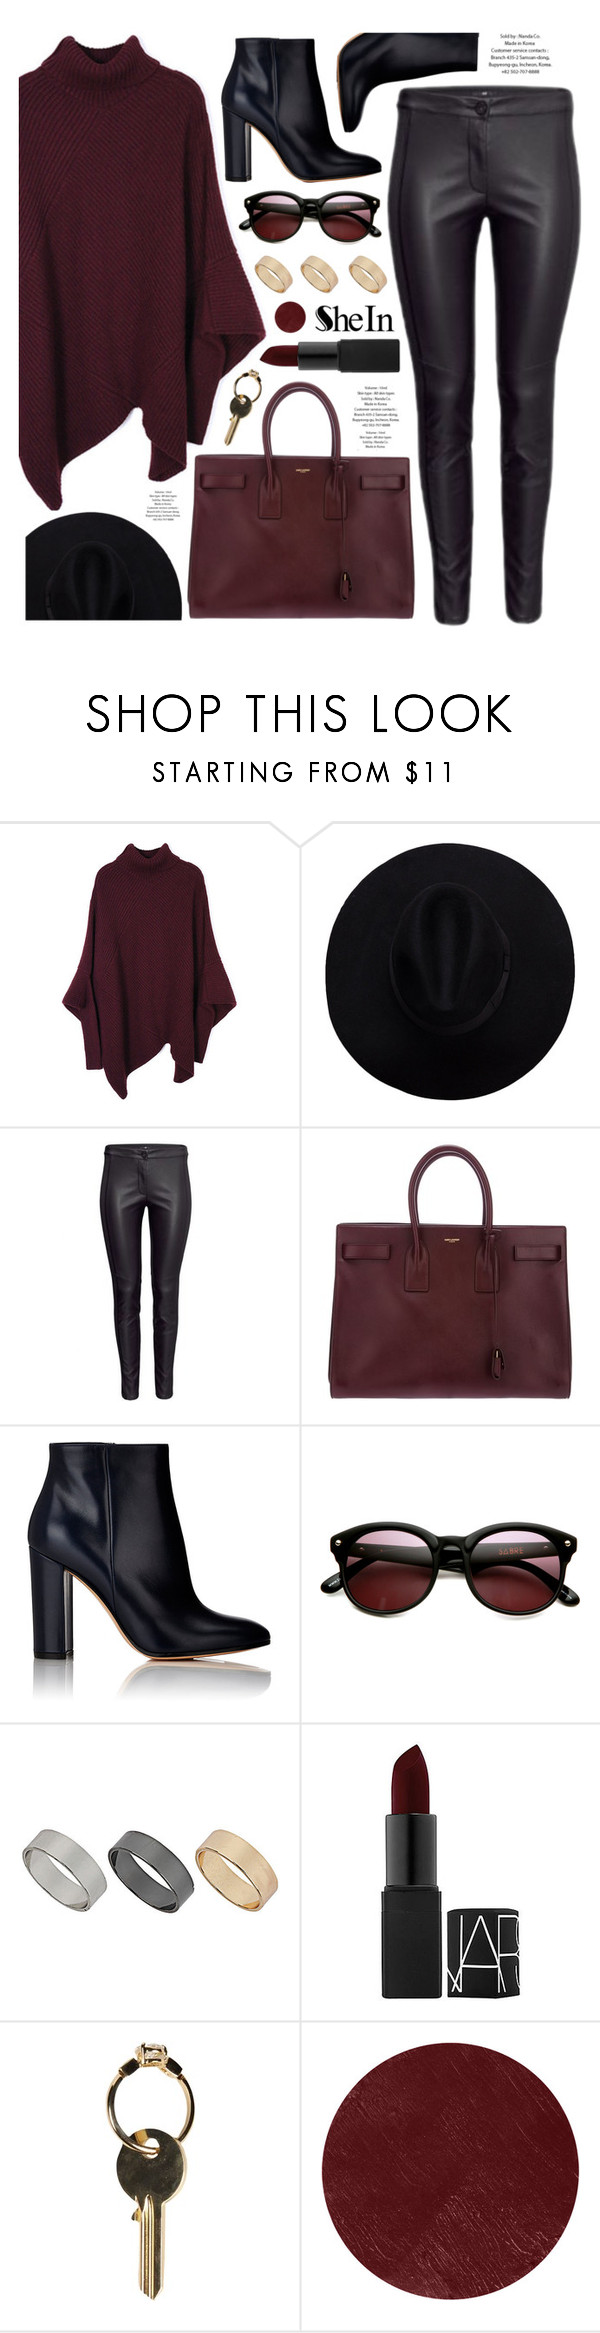 """burgundy"" by ruska-10 ❤ liked on Polyvore featuring Yves Saint Laurent, Gianvito Rossi, Sabre Vision, Dorothy Perkins, NARS Cosmetics, Maison Margiela, Burberry and Sheinside"